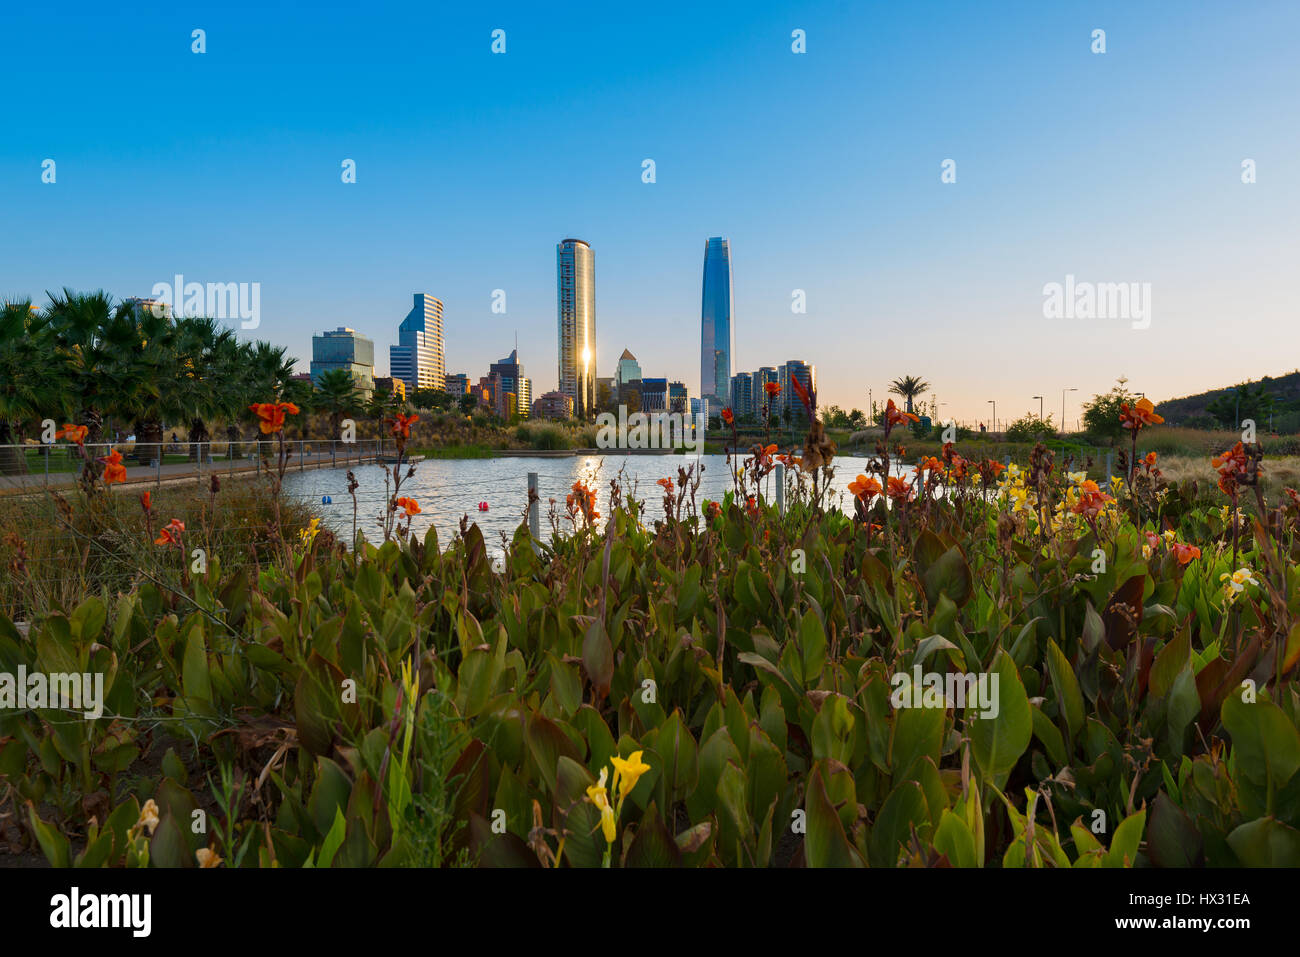 Pond at Bicentennial Park in the wealthy Vitacura district and skyline of buildings at financial district, Santiago - Stock Image